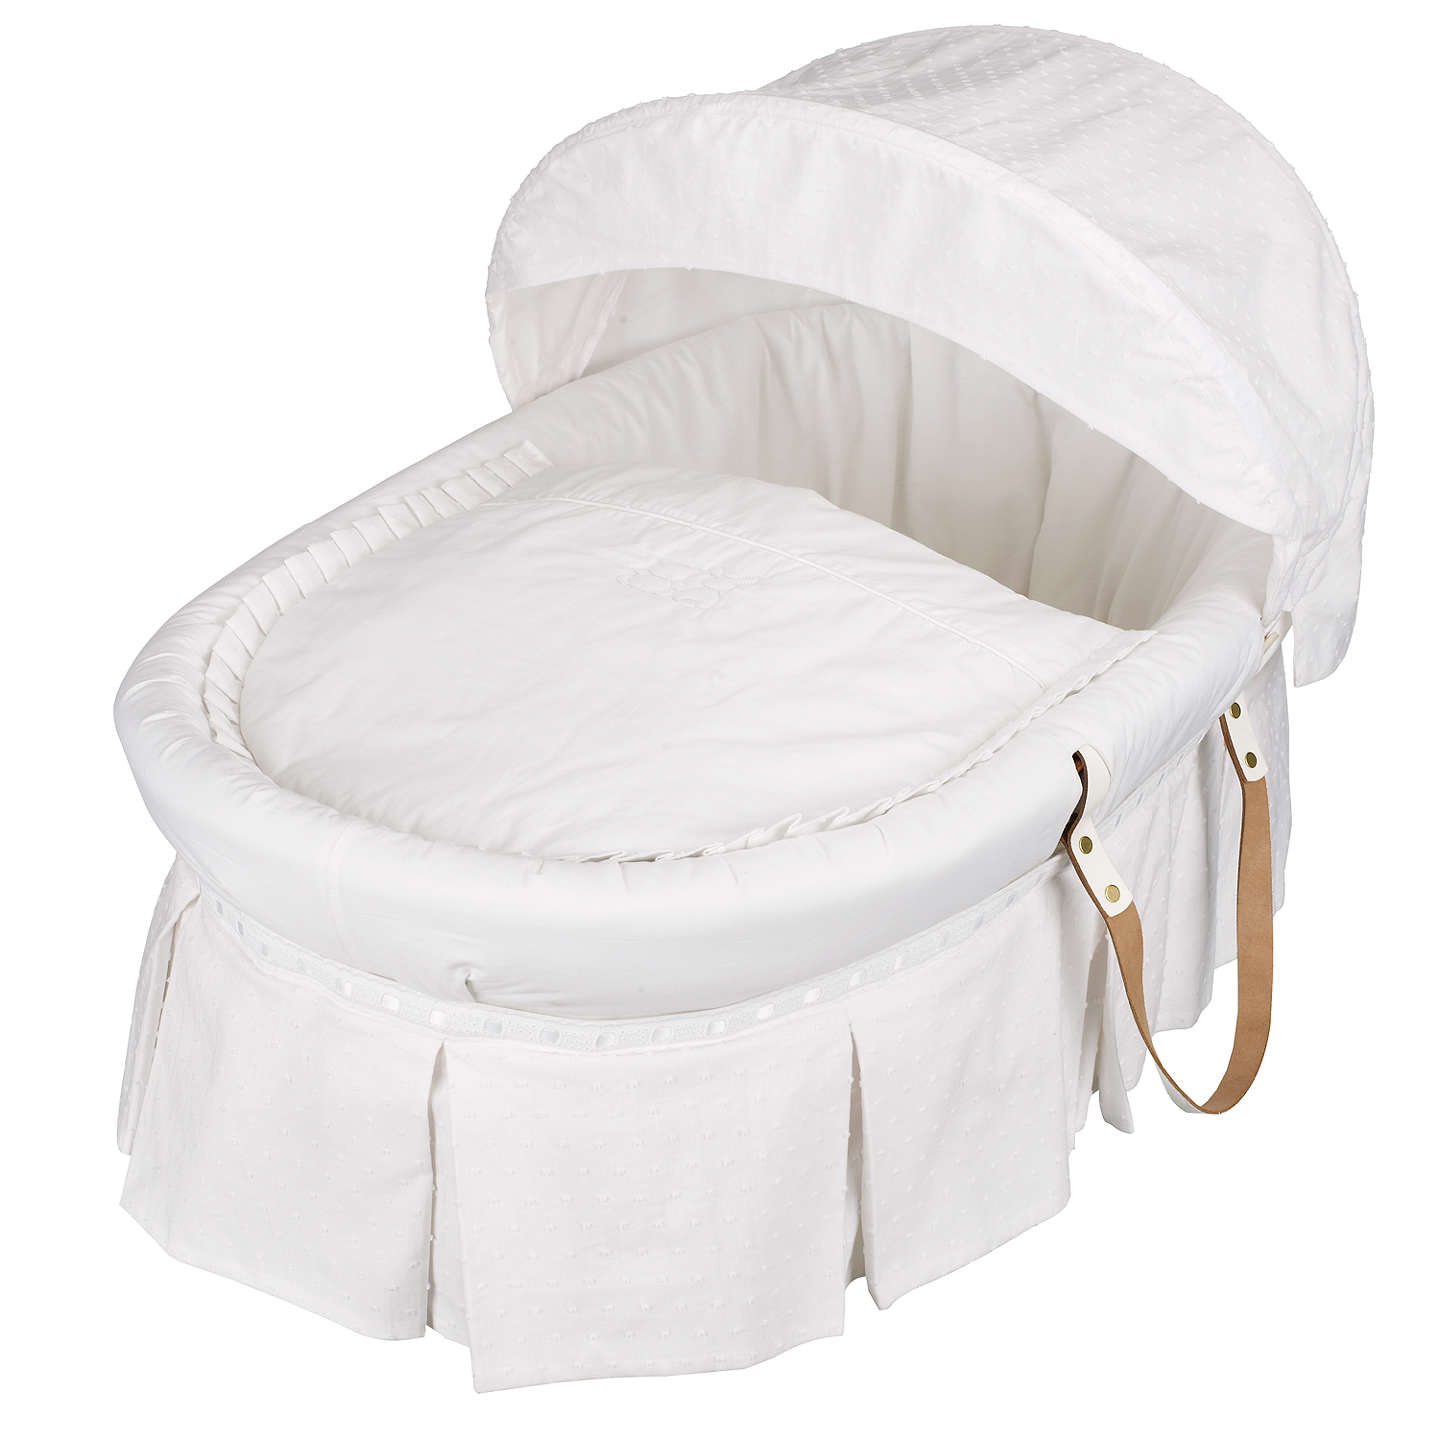 BuyEmile et Rose Moses Basket, White Online at johnlewis.com